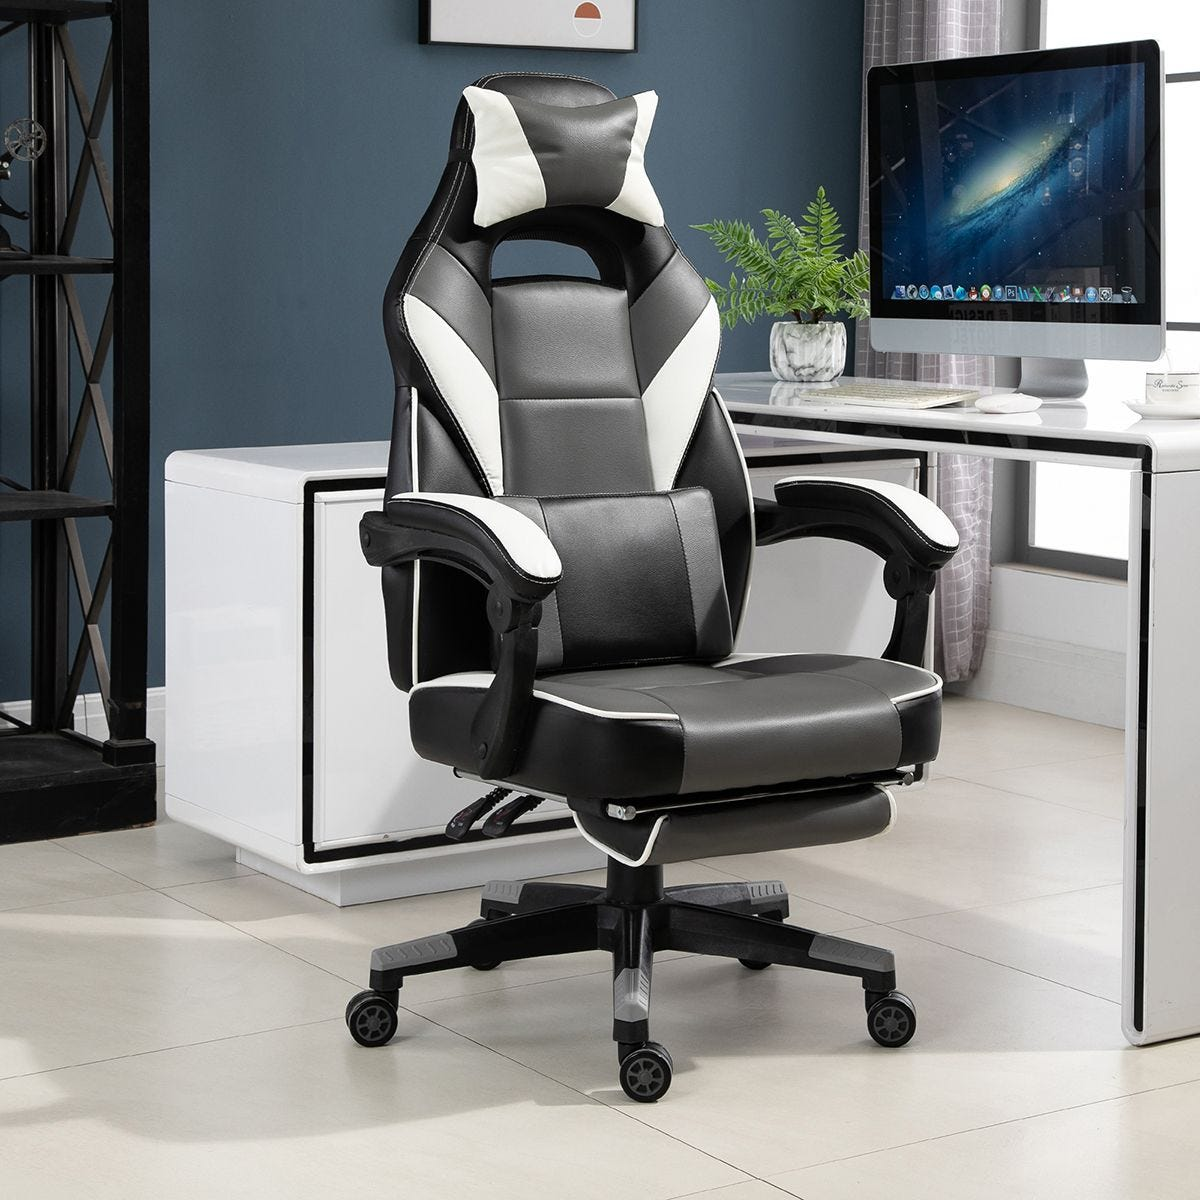 Gaming Office Chair Ergonomic With Padding Footrest Neck Back Pillow Grey